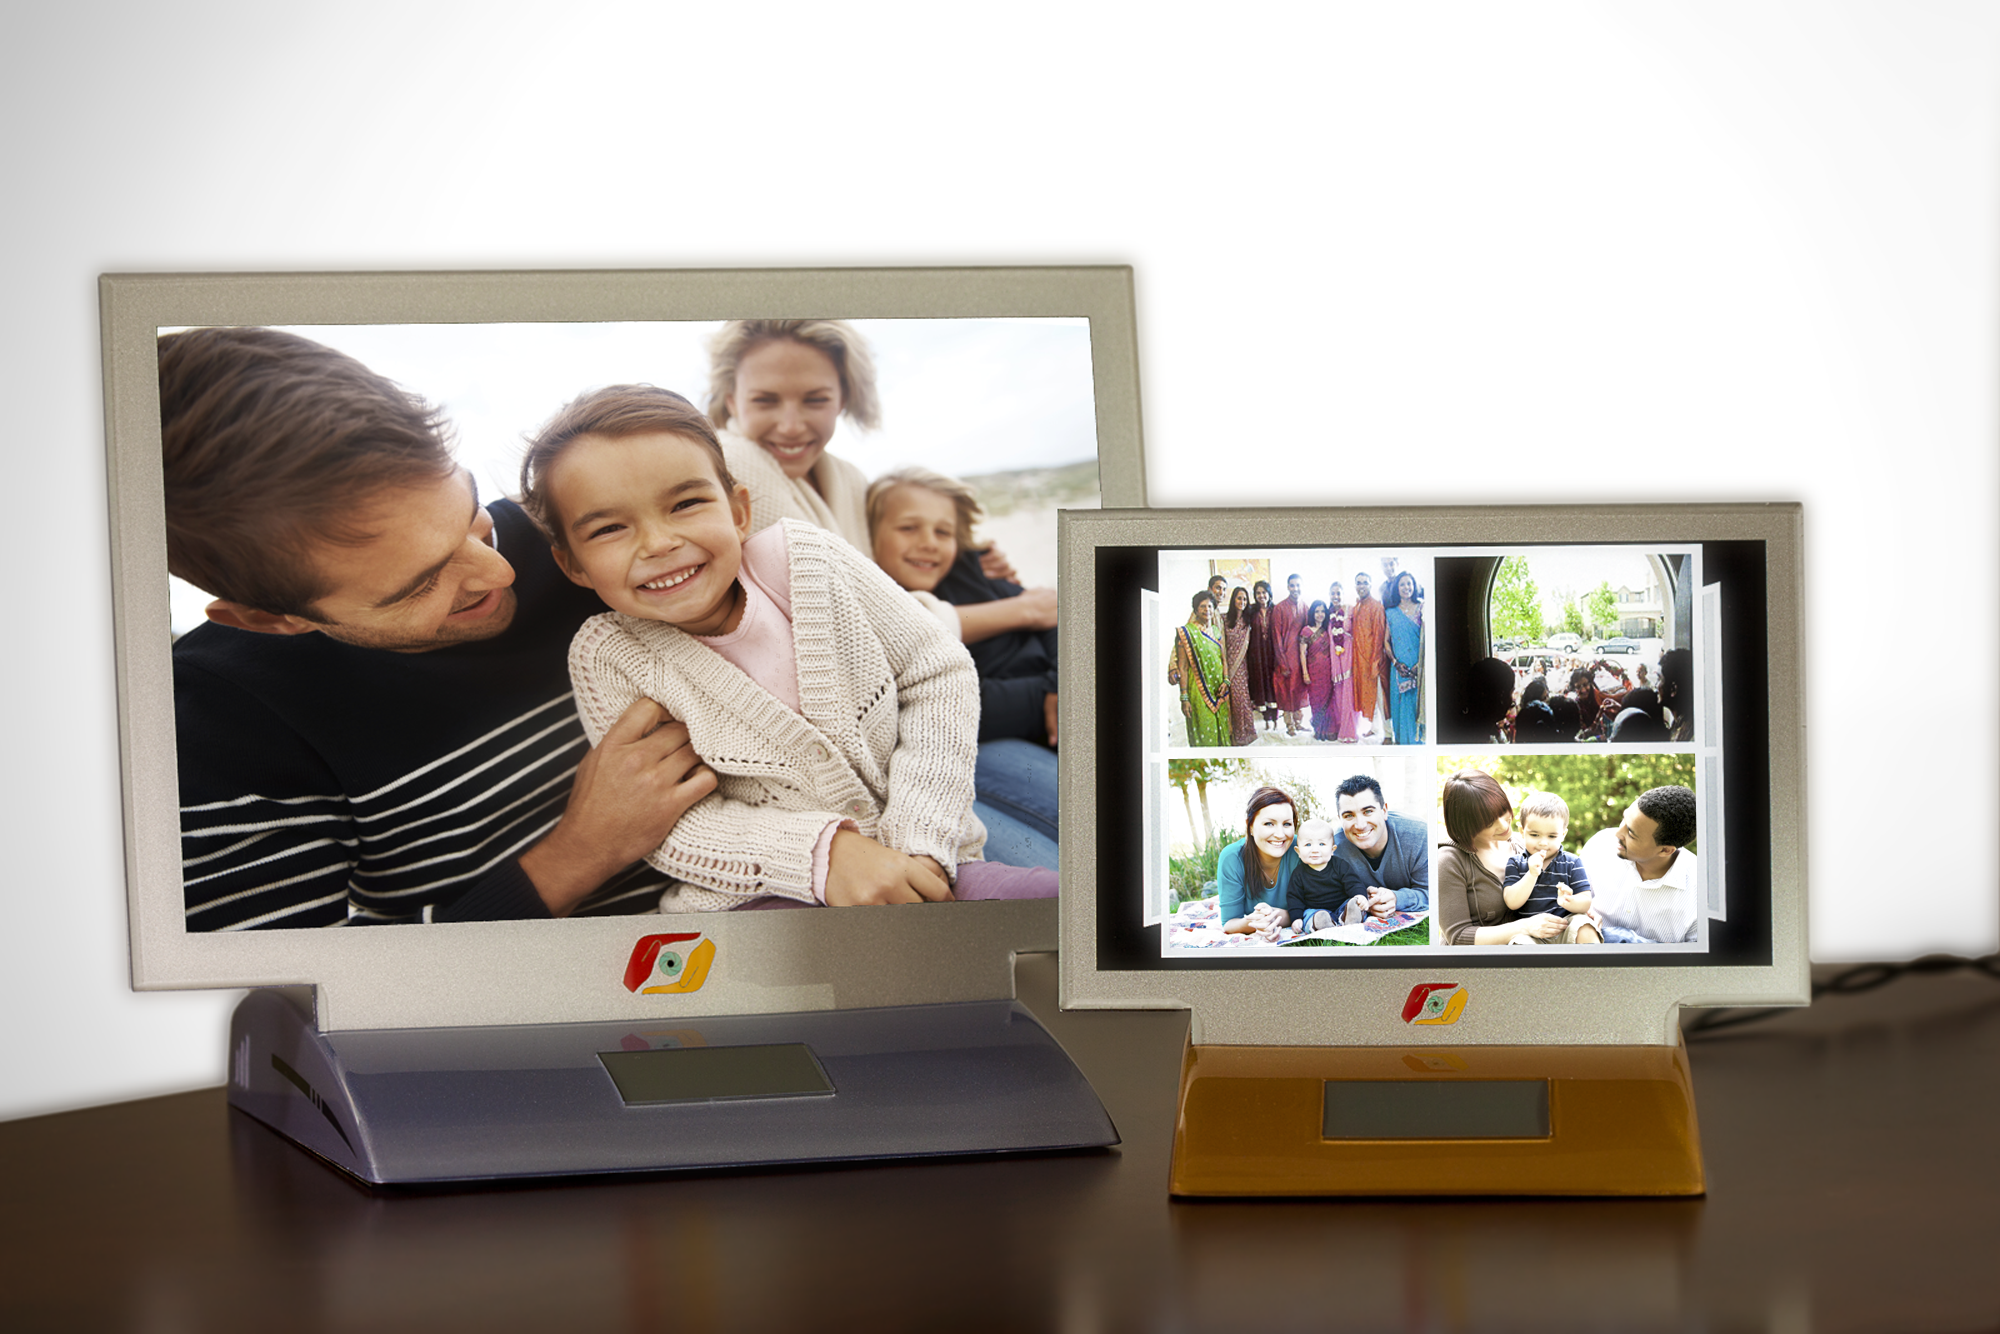 shobii launches kickstarter project to change how photos